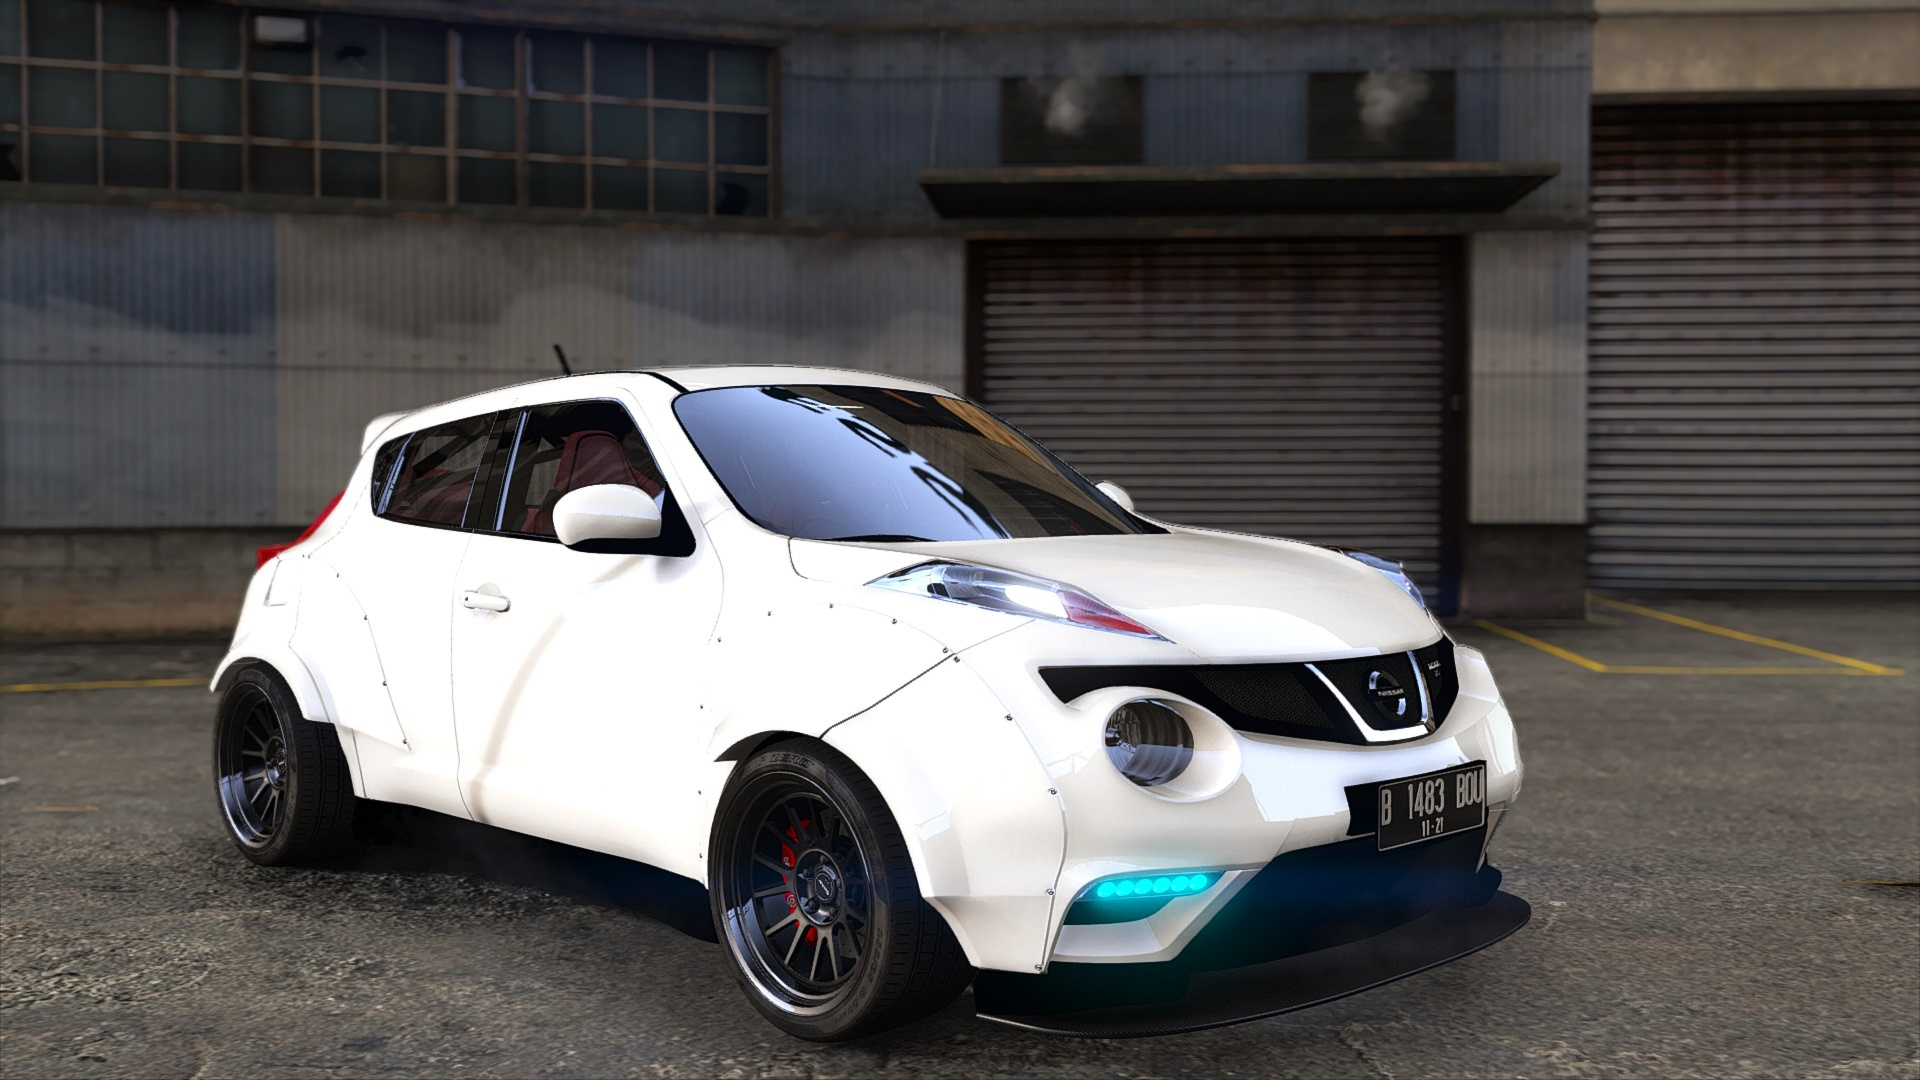 Ford Fusion Rs >> 2014 Nissan Juke RS Nismo Add On - GTA5-Mods.com